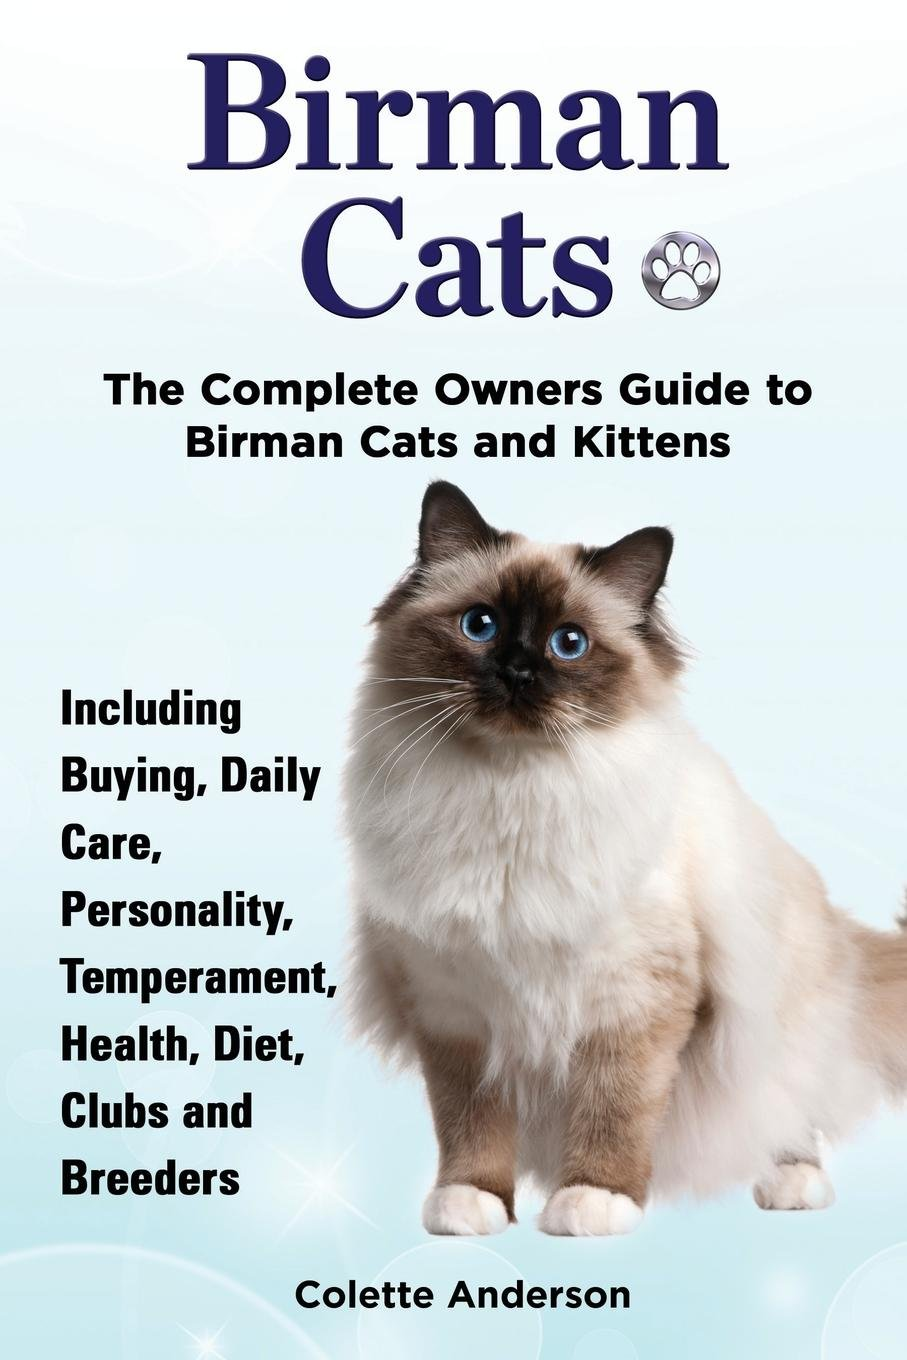 Birman Cats, The Complete Owners Guide to Birman Cats and Kittens Including Buying, Daily Care, Personality, Temperament, Health, Diet, Clubs and Breeders